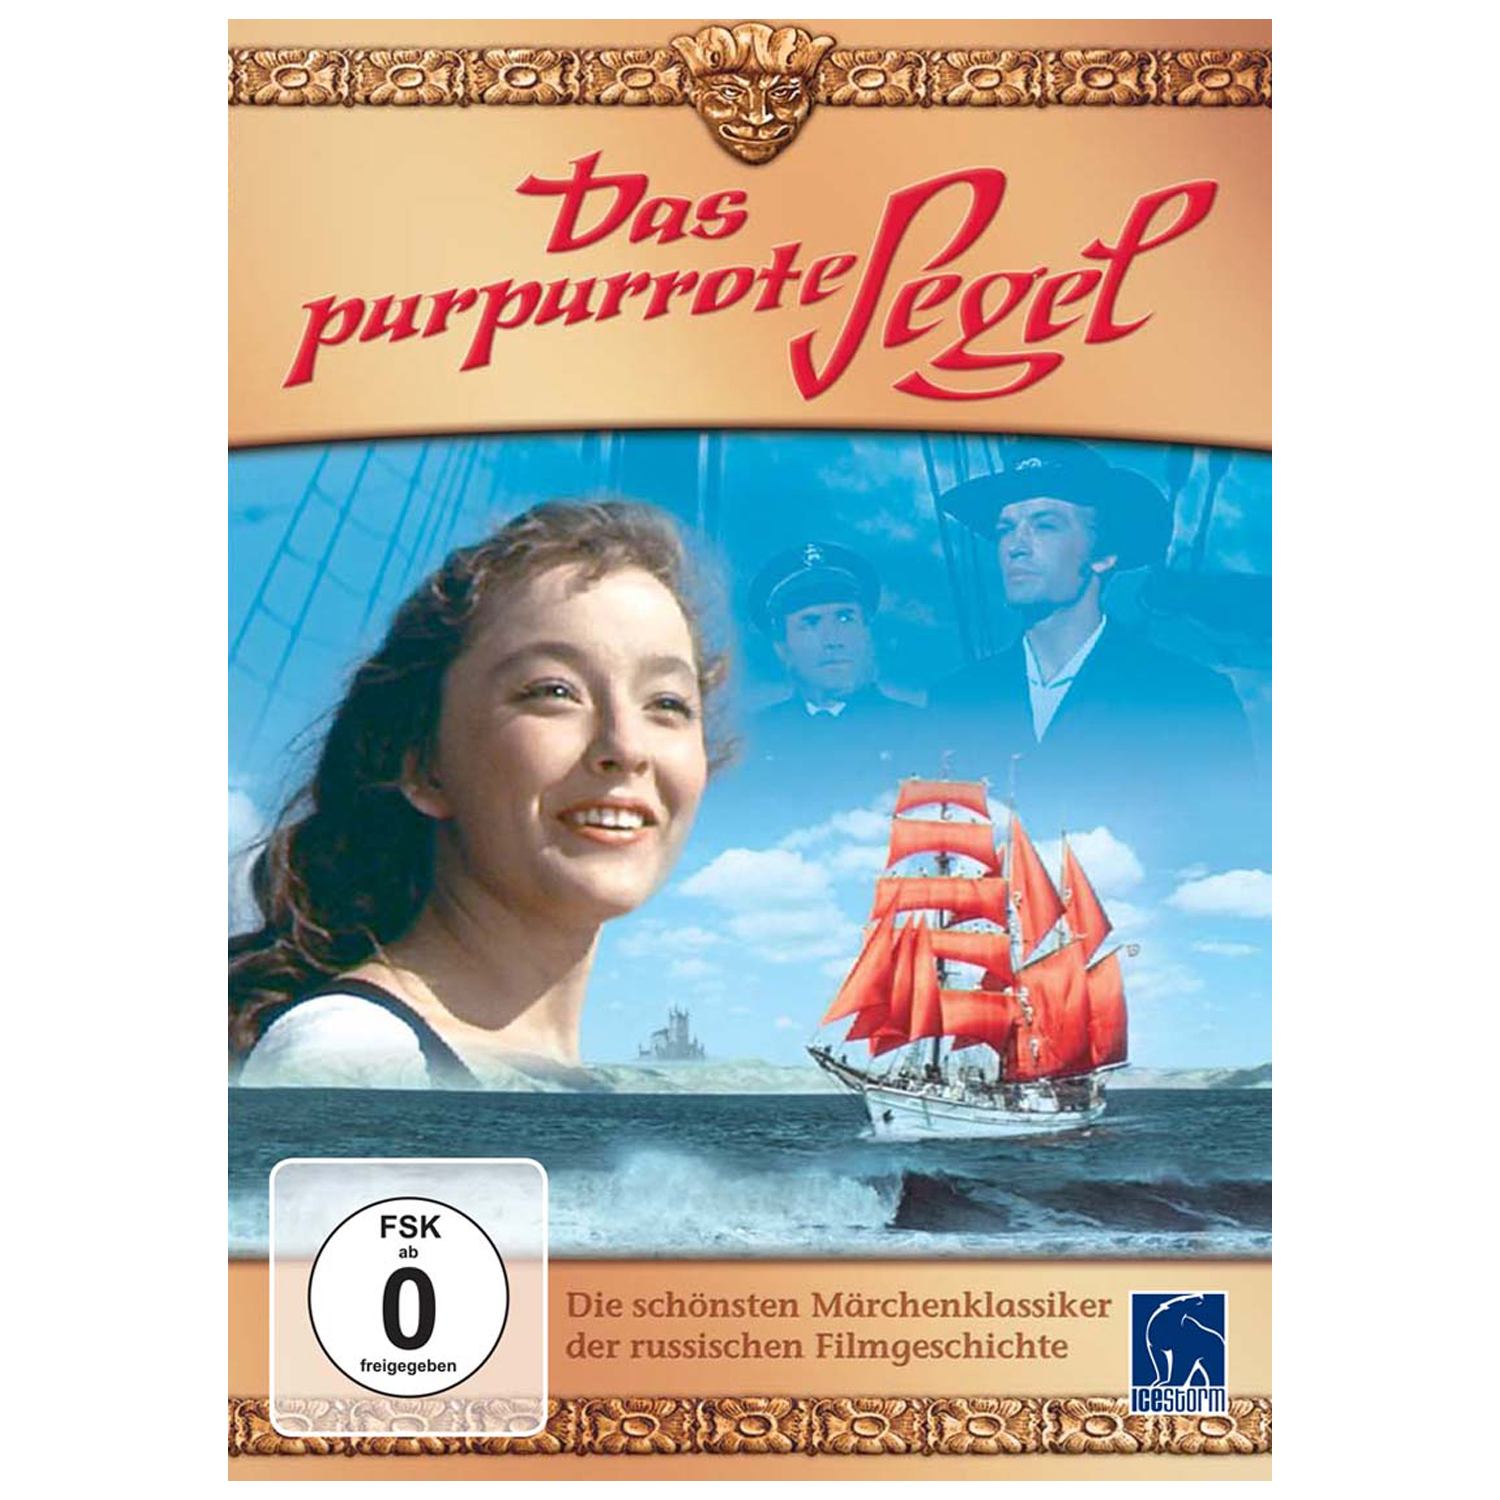 dvd-das-purpurrote-segel